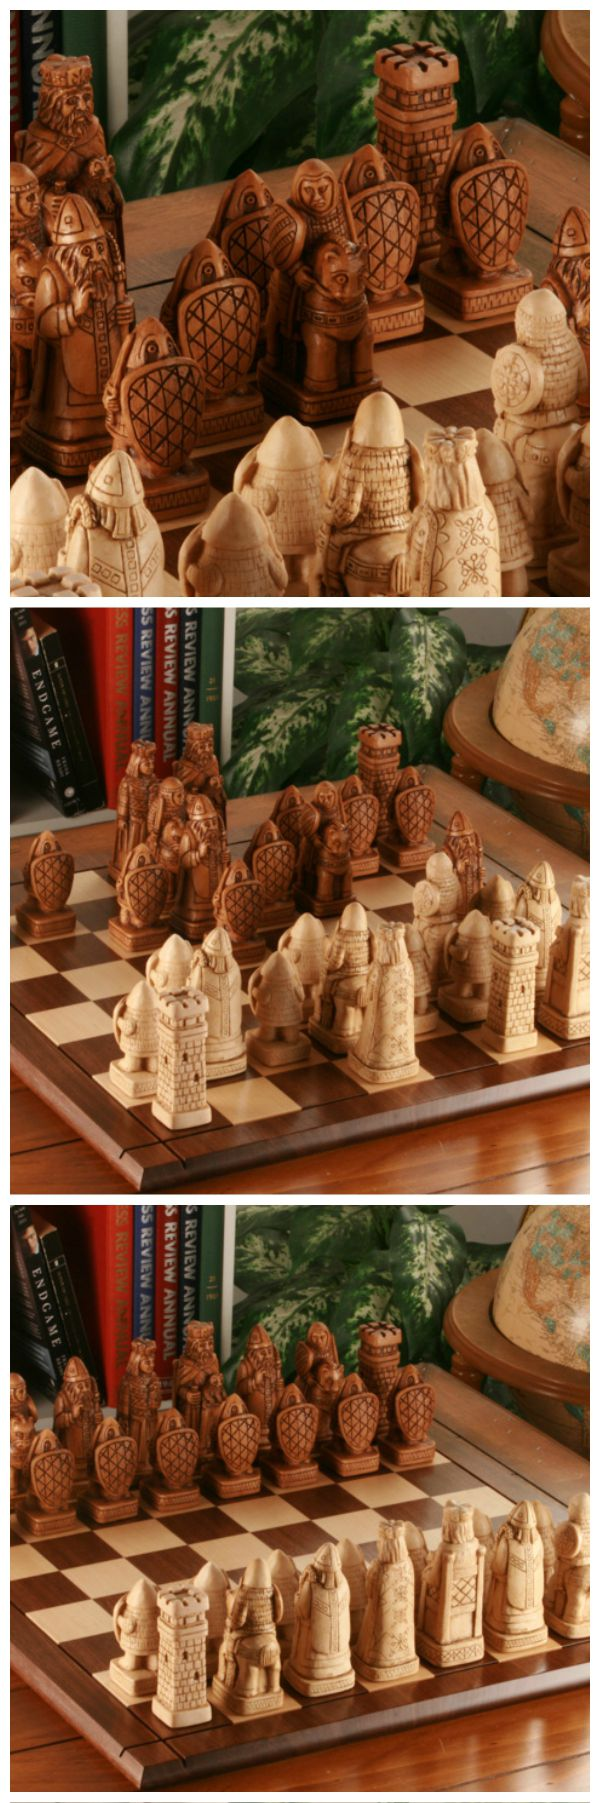 Chess pieces handcrafted entirely in US. #handmade